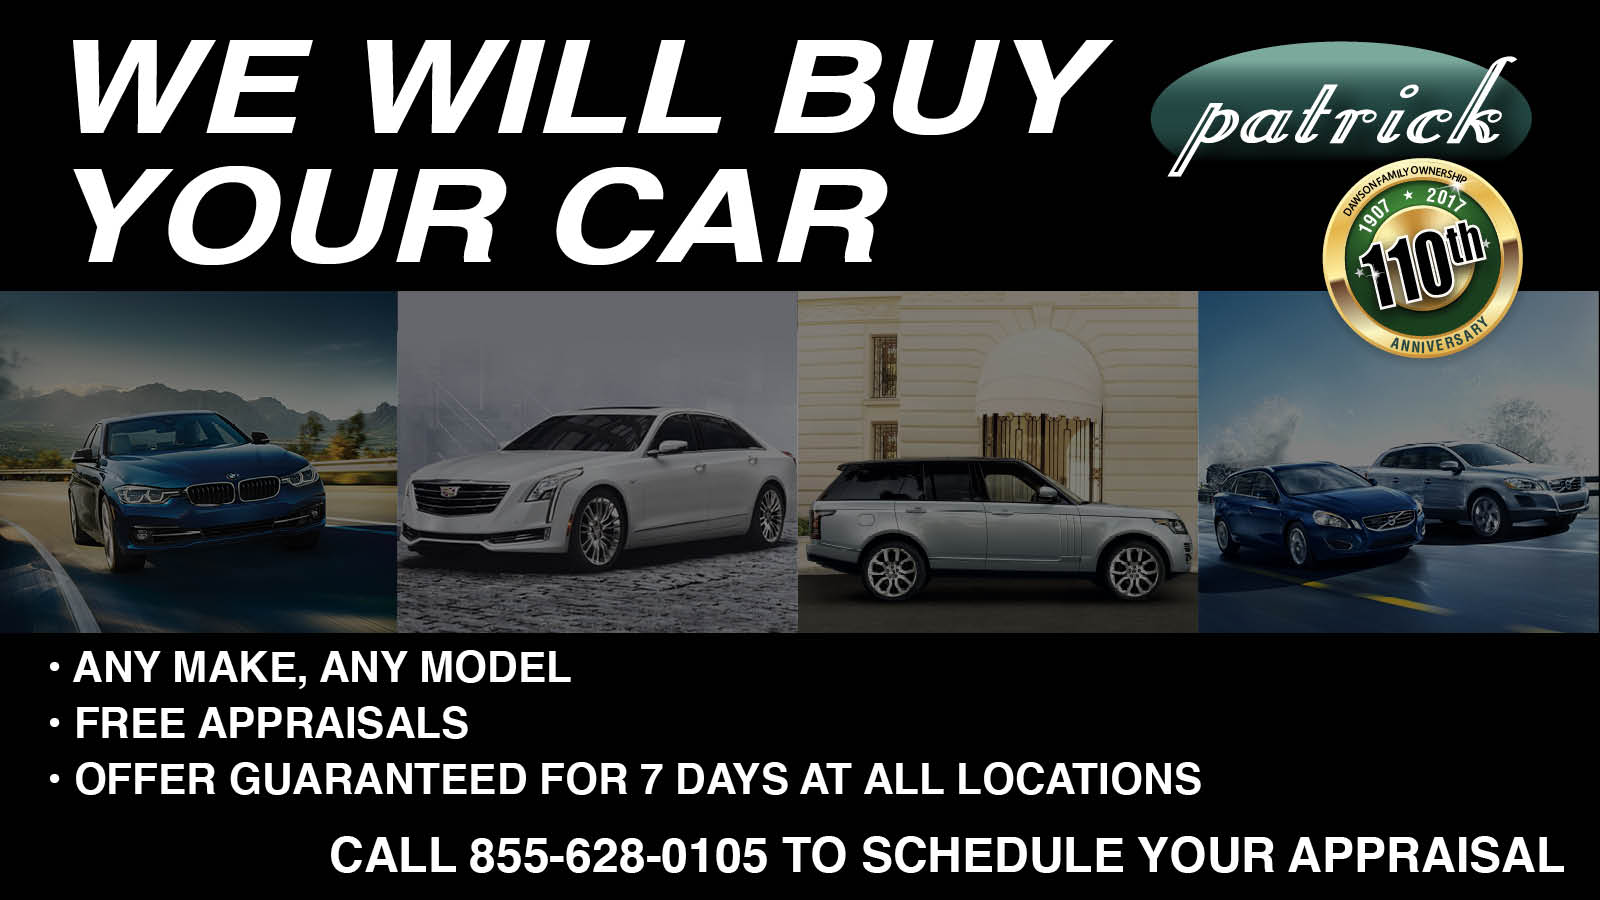 The Patrick Dealer Group | New BMW, MINI, Volvo, Jaguar, CADILLAC ...